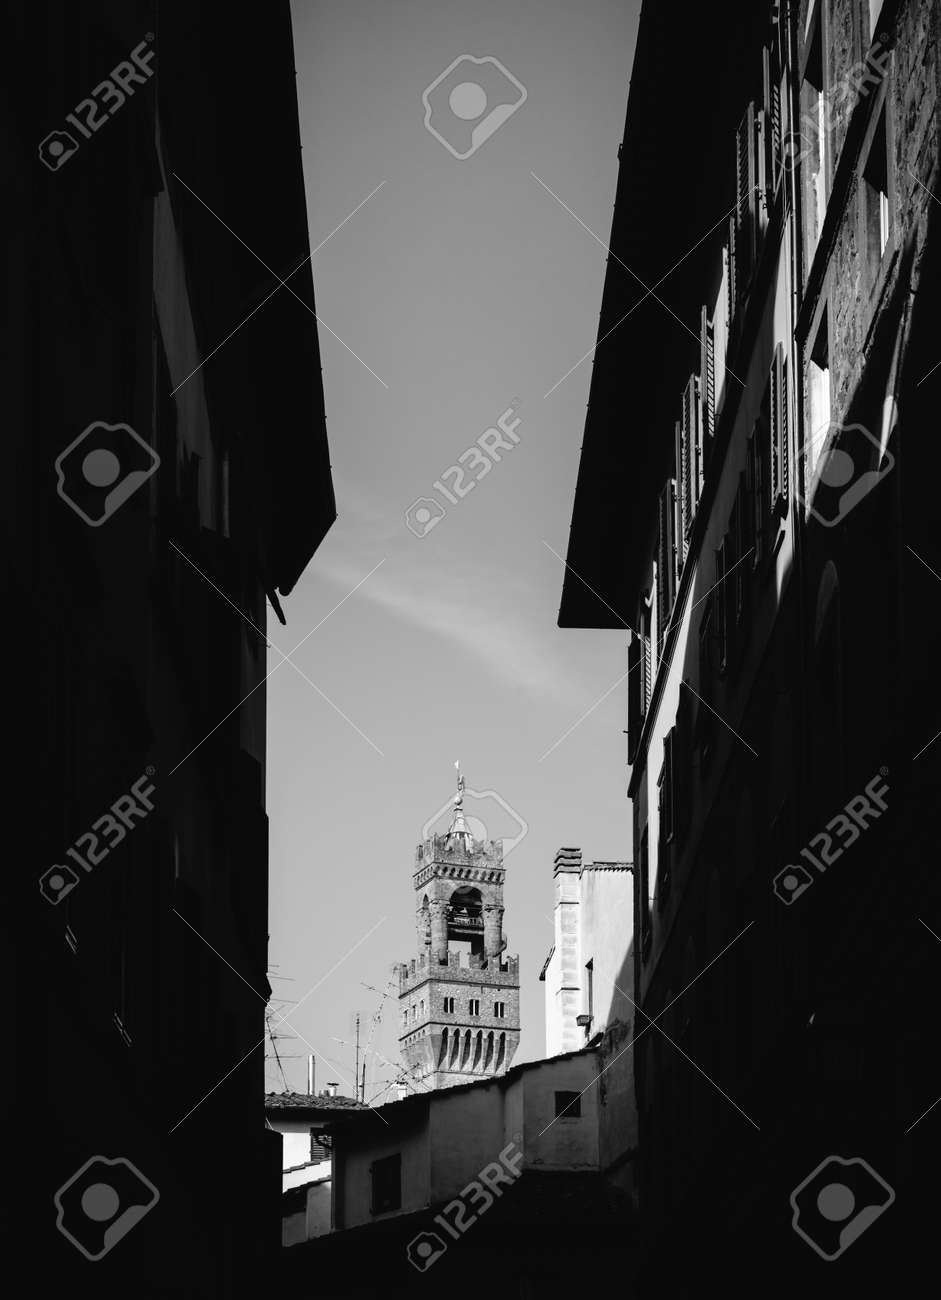 Stock photo tower of arnolfo florence tuscany italy in black and white fine art style